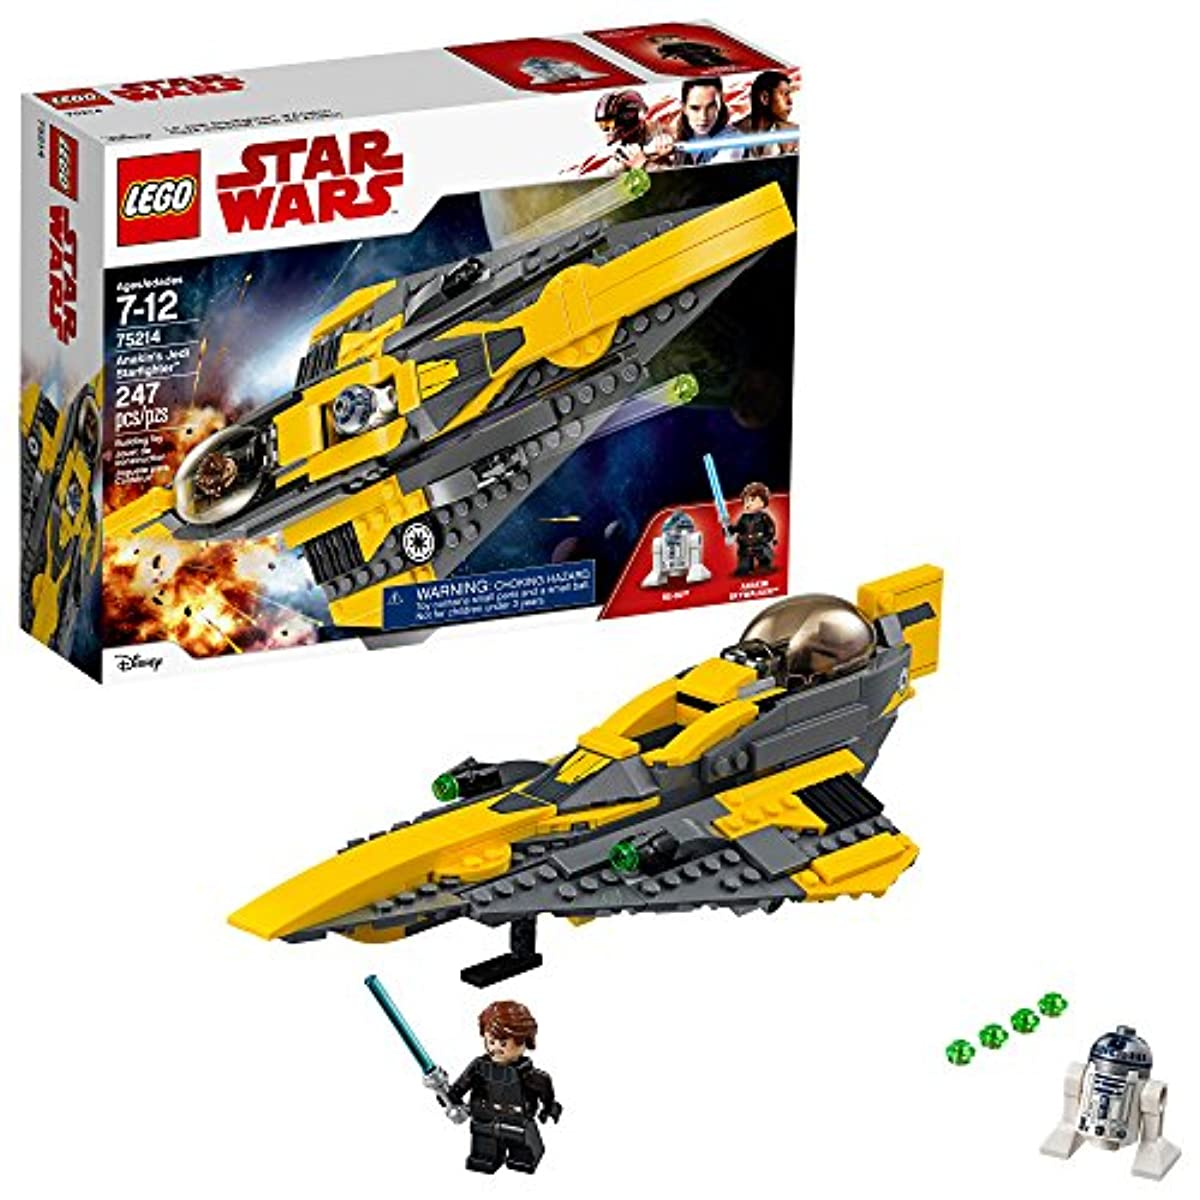 [레고 스타워즈] LEGO Star Wars 75214 Anakin's Jedi Starfighter